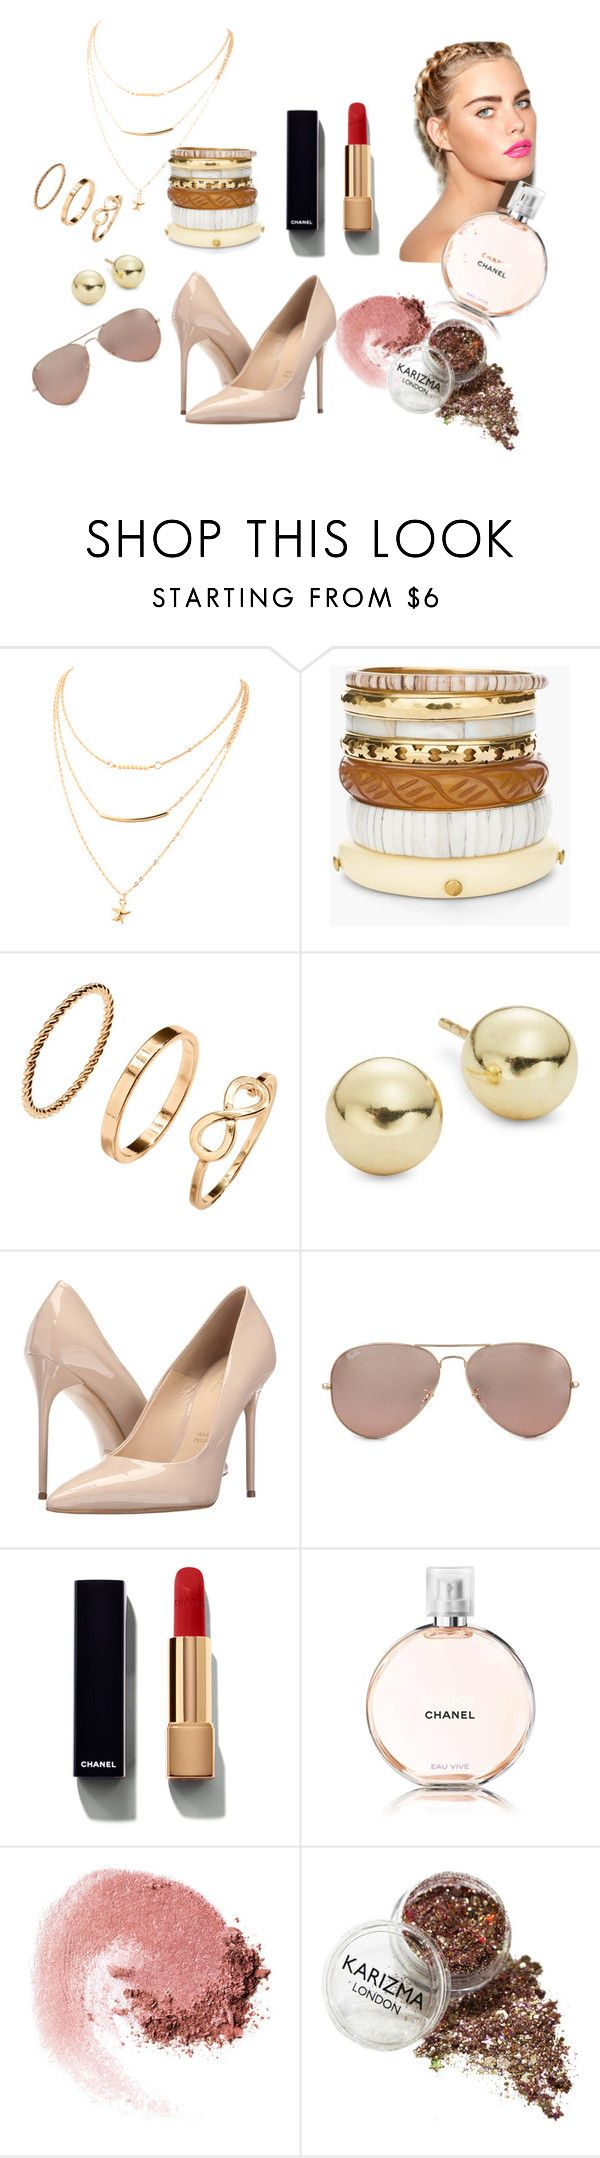 """""""Acc"""" by gloria-manriquez on Polyvore featuring moda, Chico's, Lord & Taylor, Massimo Matteo, Ray-Ban, Chanel y NARS Cosmetics"""